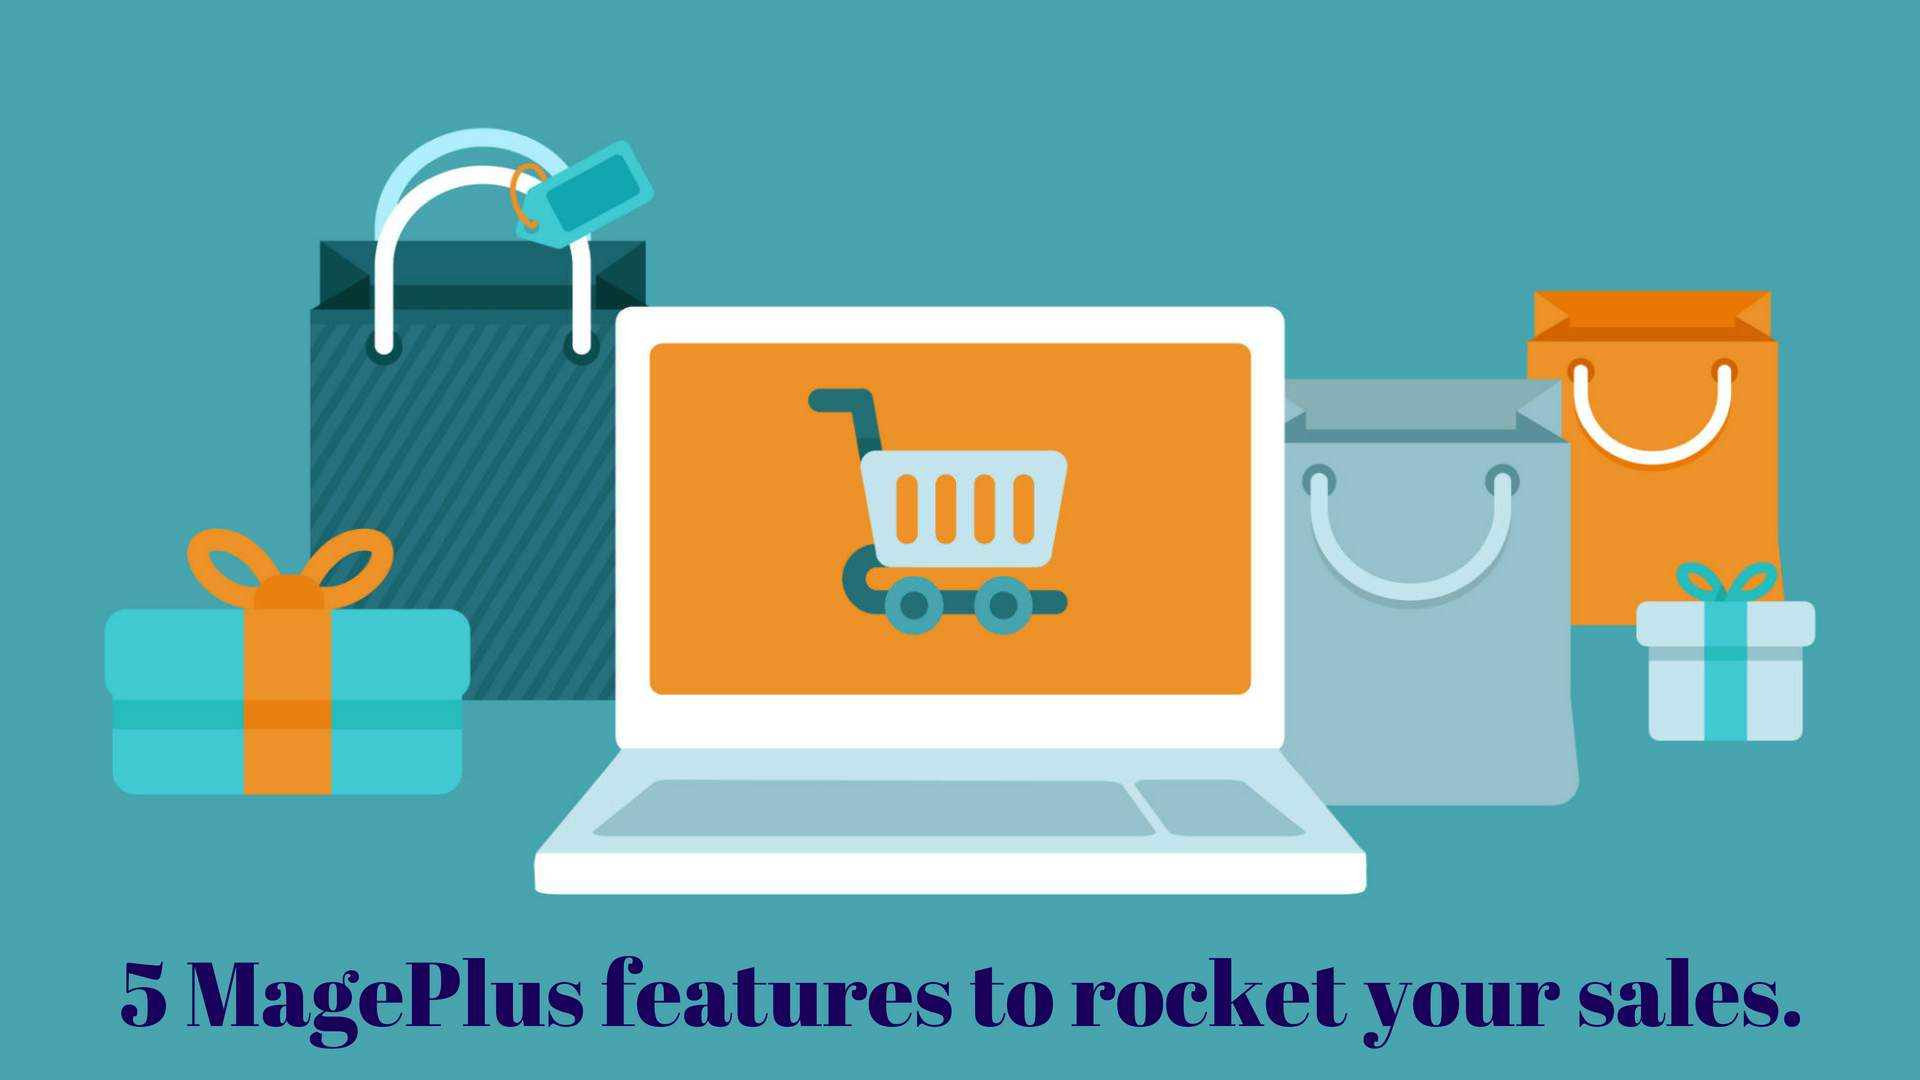 4 MagePlus features to rocket your eCommerce sales